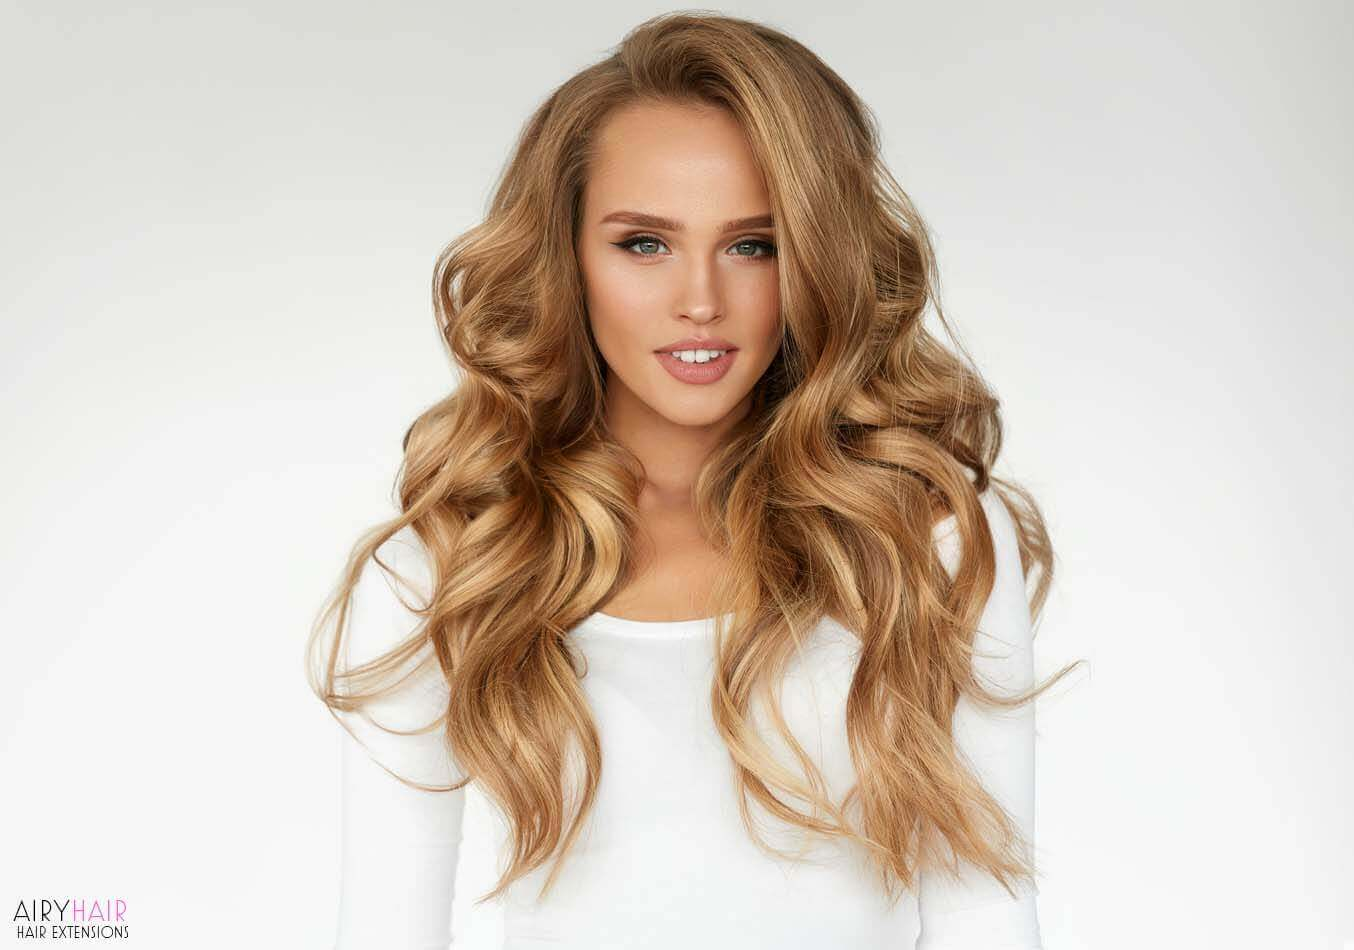 What are Easy to Apply Hair Extensions?